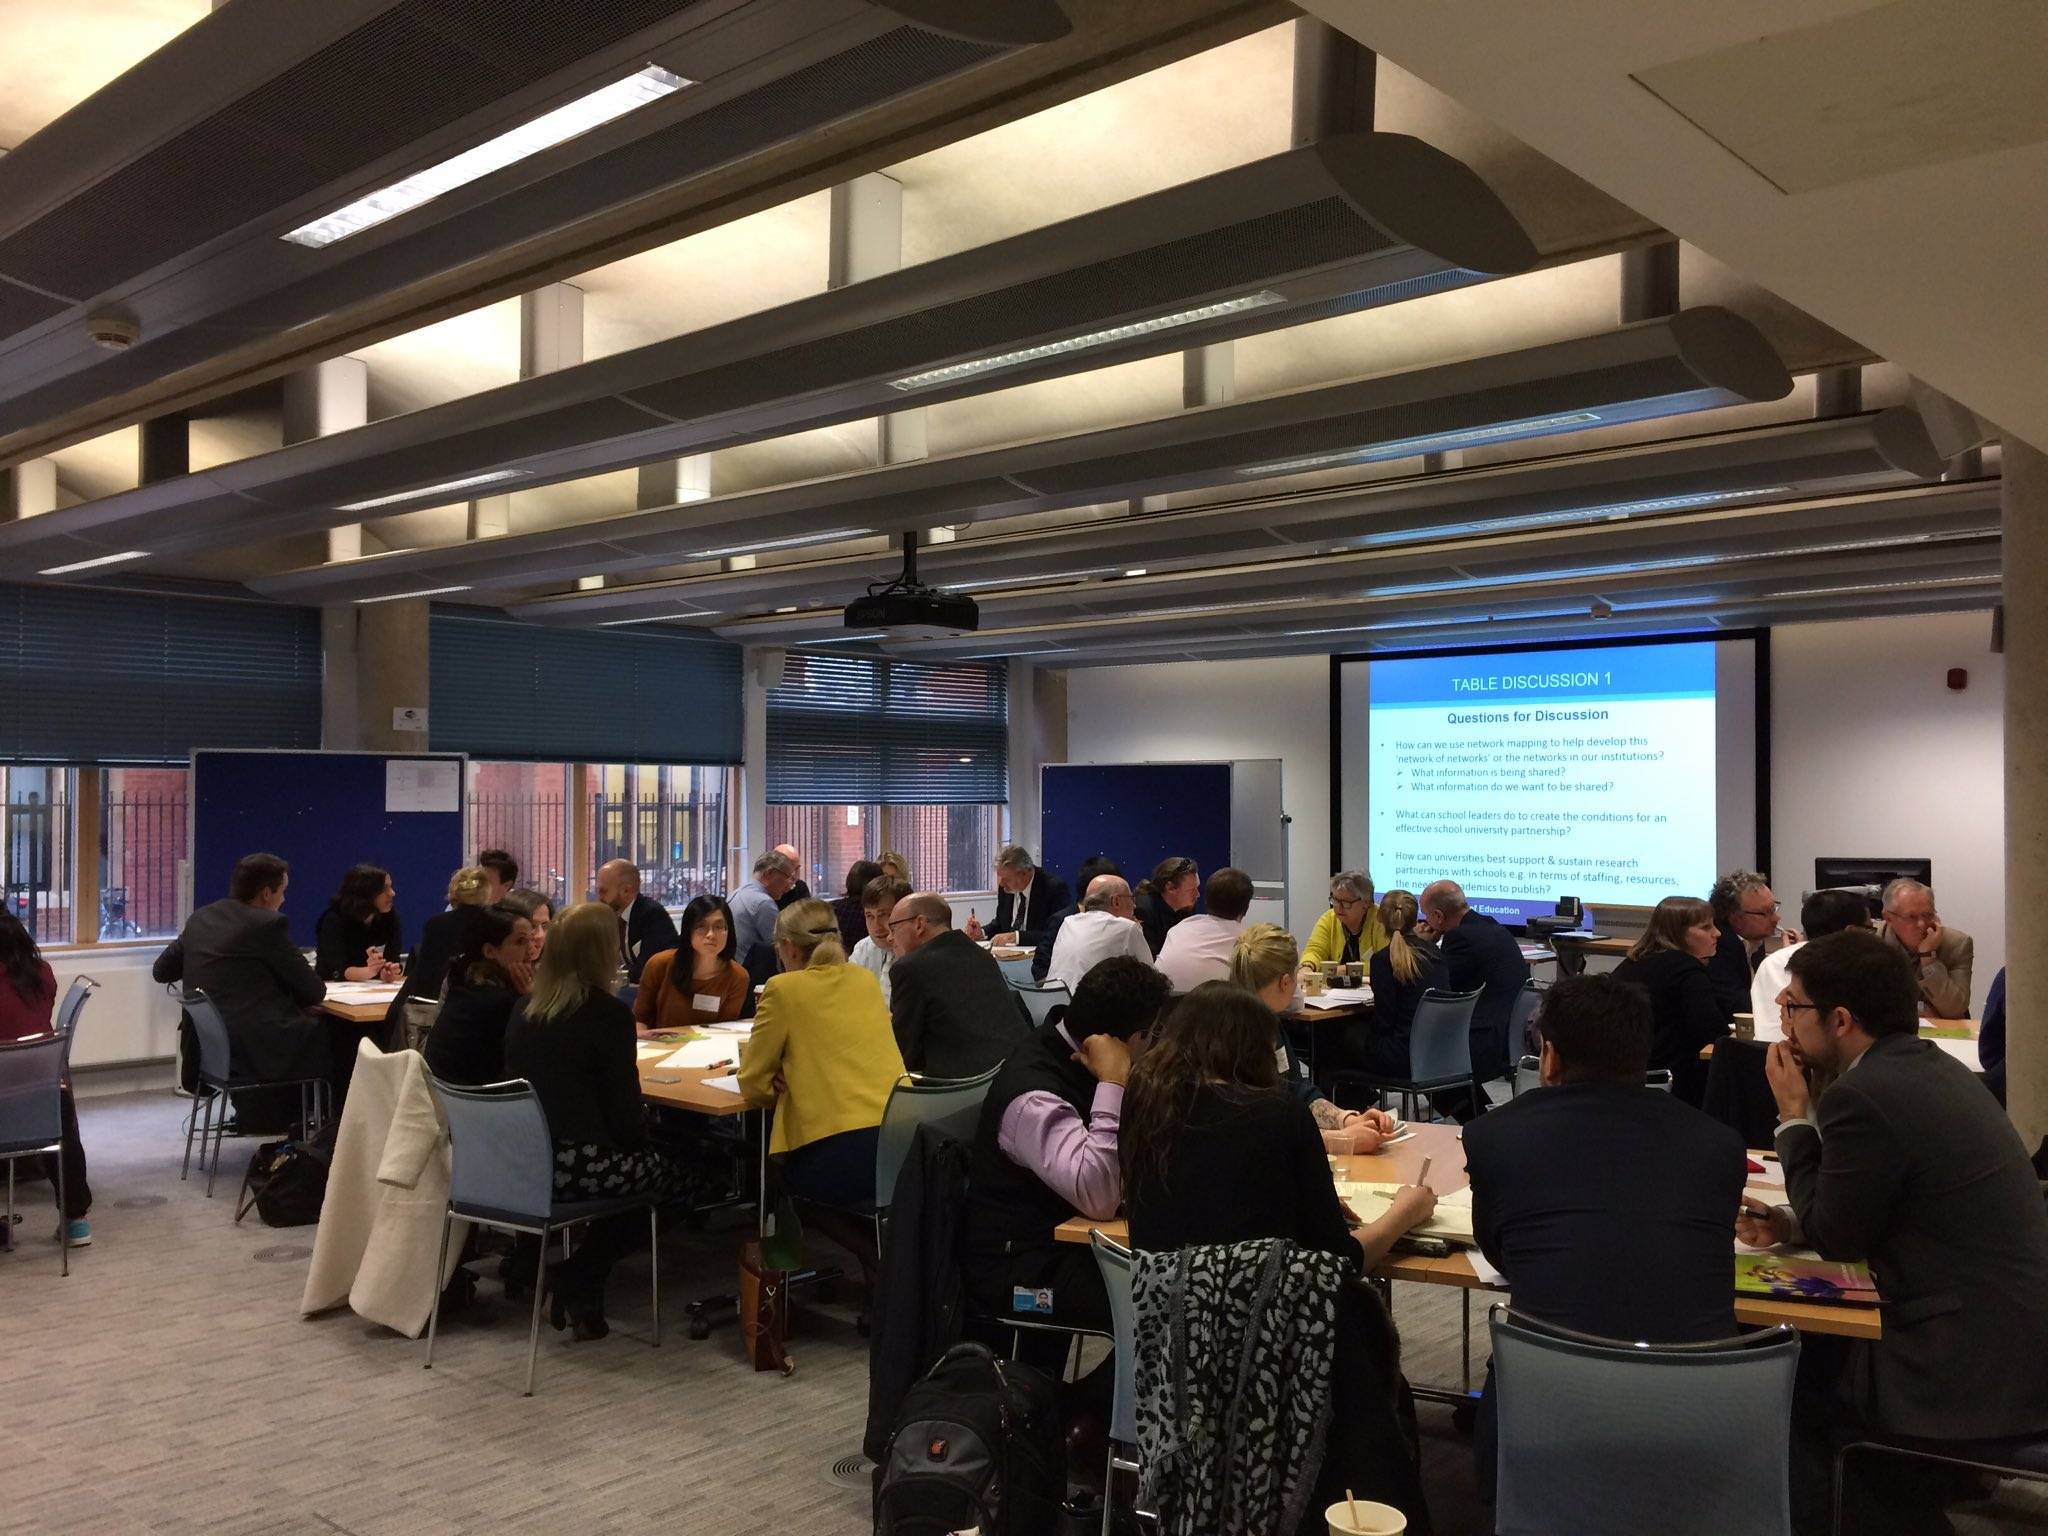 Packed room @CambridgeEdFac for 4th symposium of research leads network hosted by @SUPER_Network #SUPresearchleads https://t.co/KeZeAycQCq